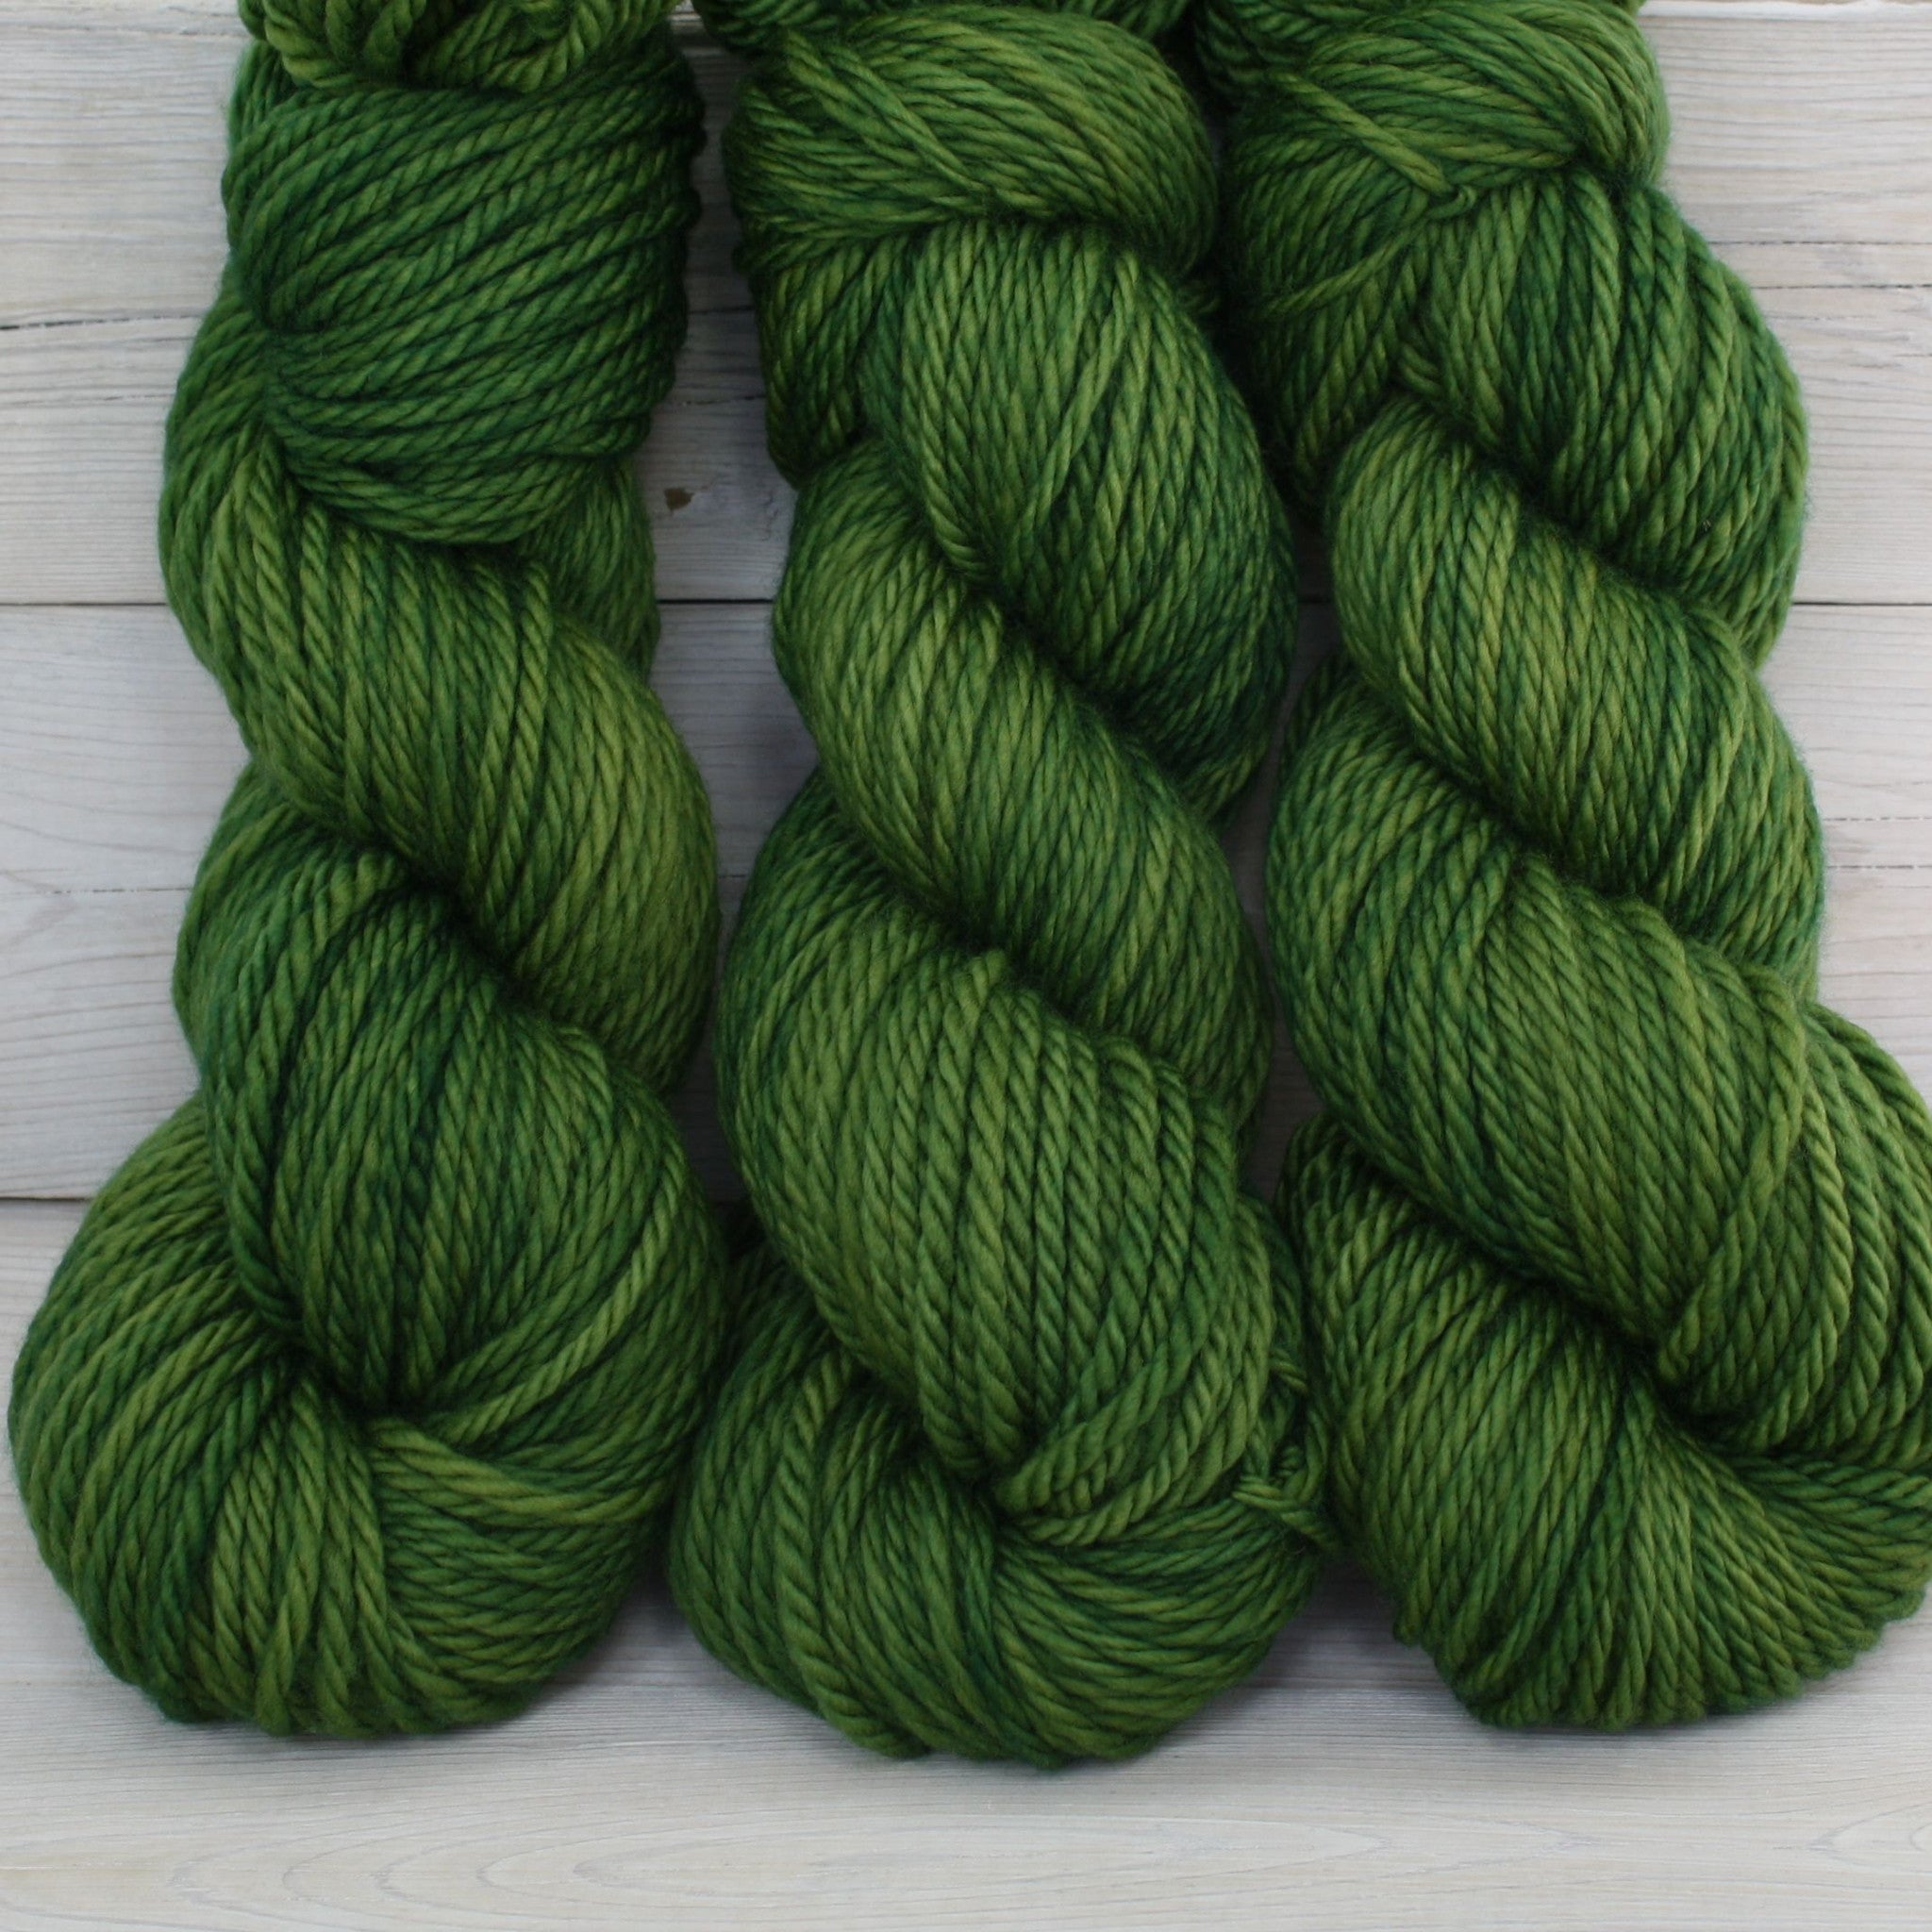 Apollo Yarn | Colorway: Moss